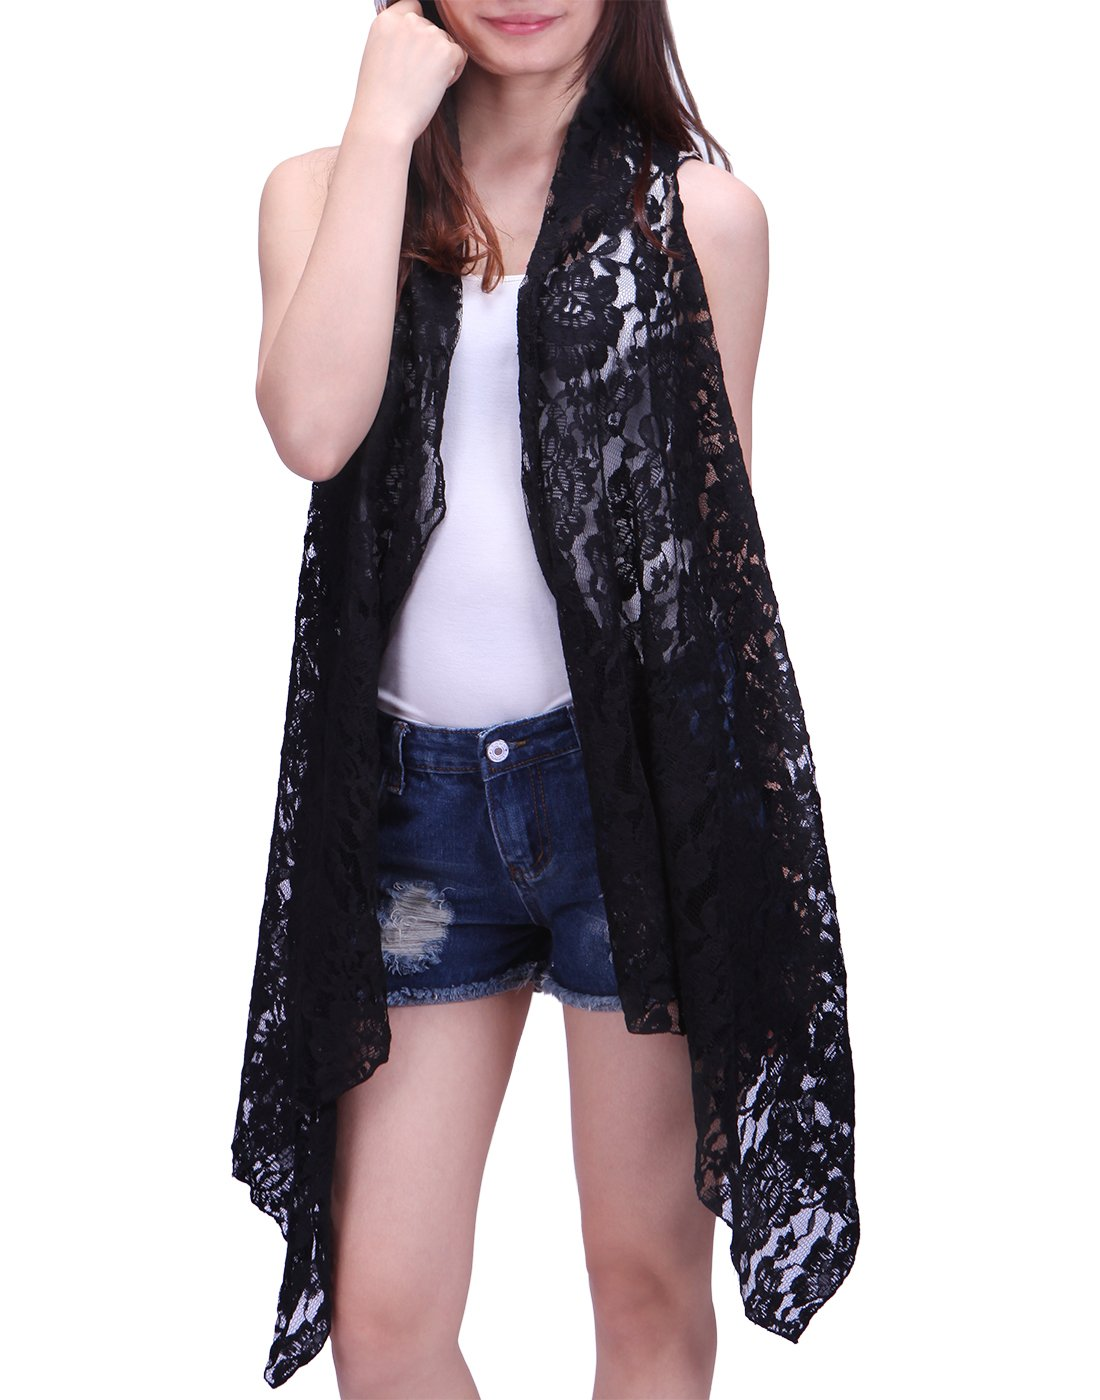 HDE Womens Open Front Lace Cardigan Sleeveless Asymmetric Drape Hem Vest Coverup (Black, XL-2X)